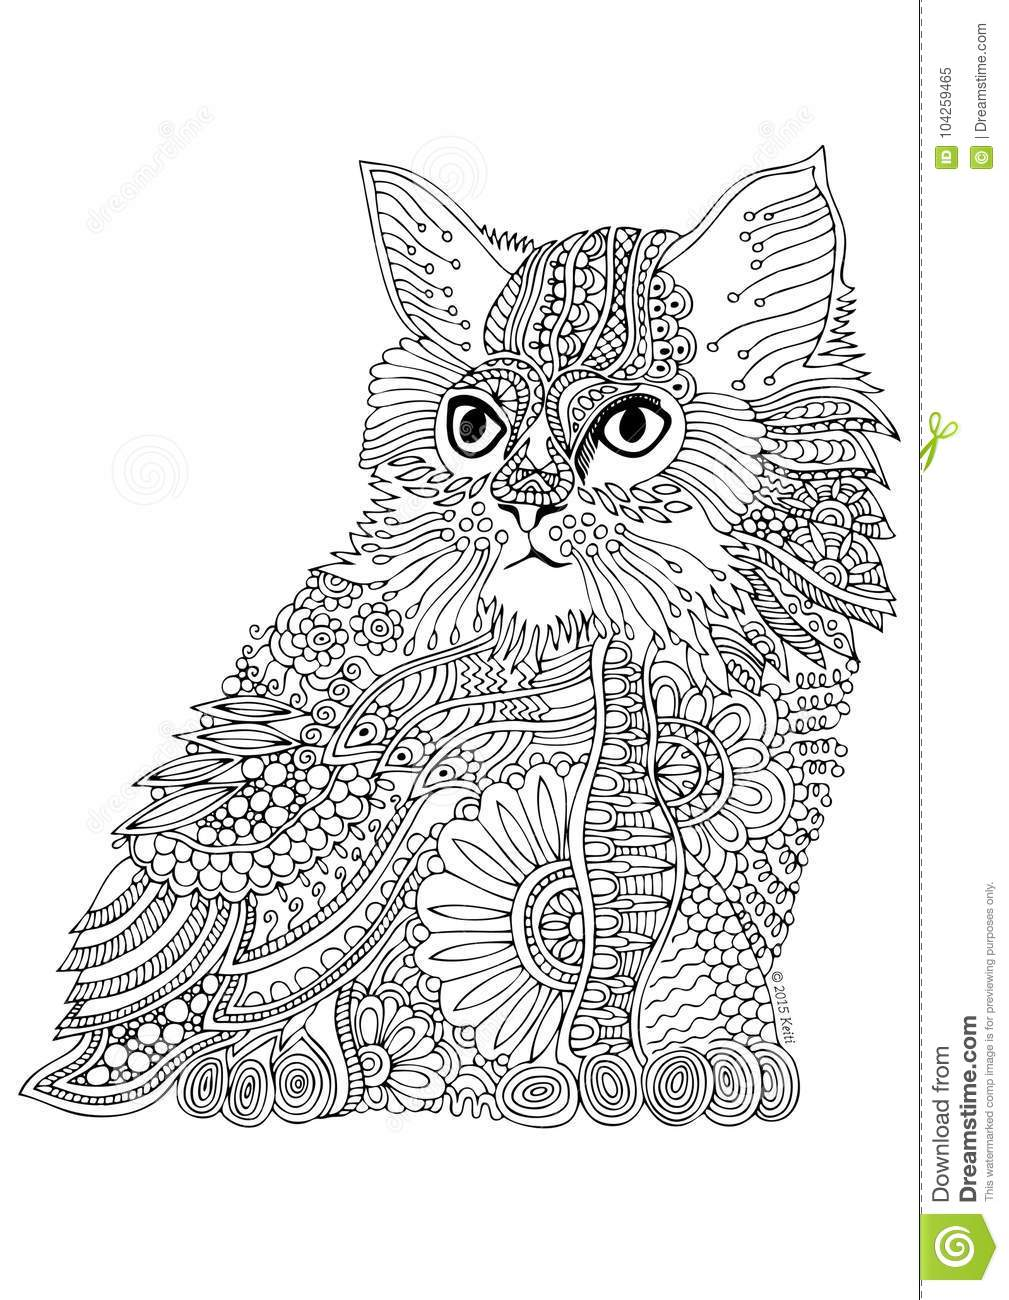 Hand Drawn Cat. Sketch For Anti-stress Coloring Page ...